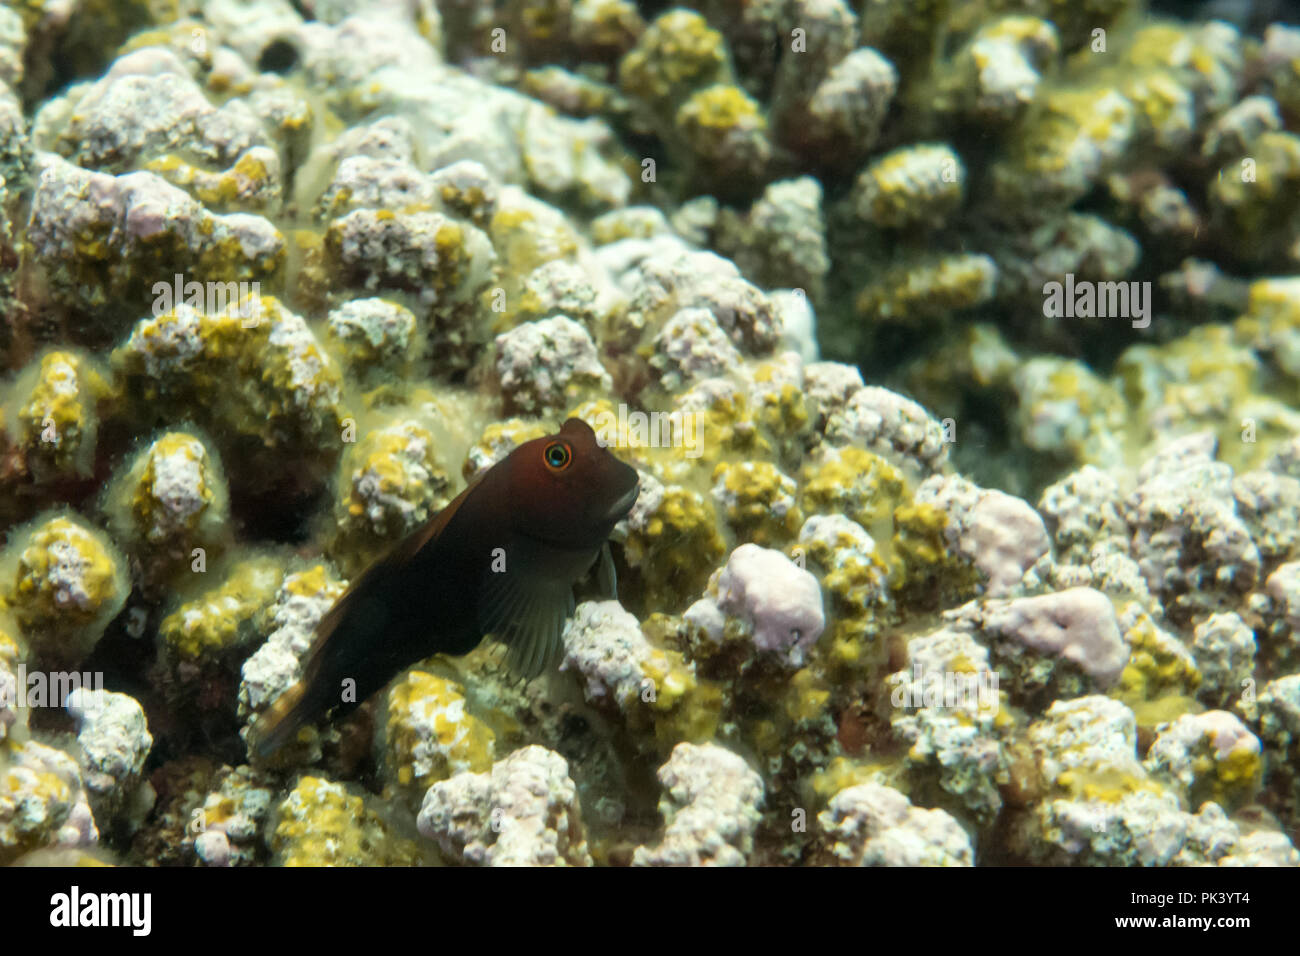 A blend sits on the dead coral due to bleaching and climate change at Flint Island, in the southern line islands of Kiribati - Stock Image